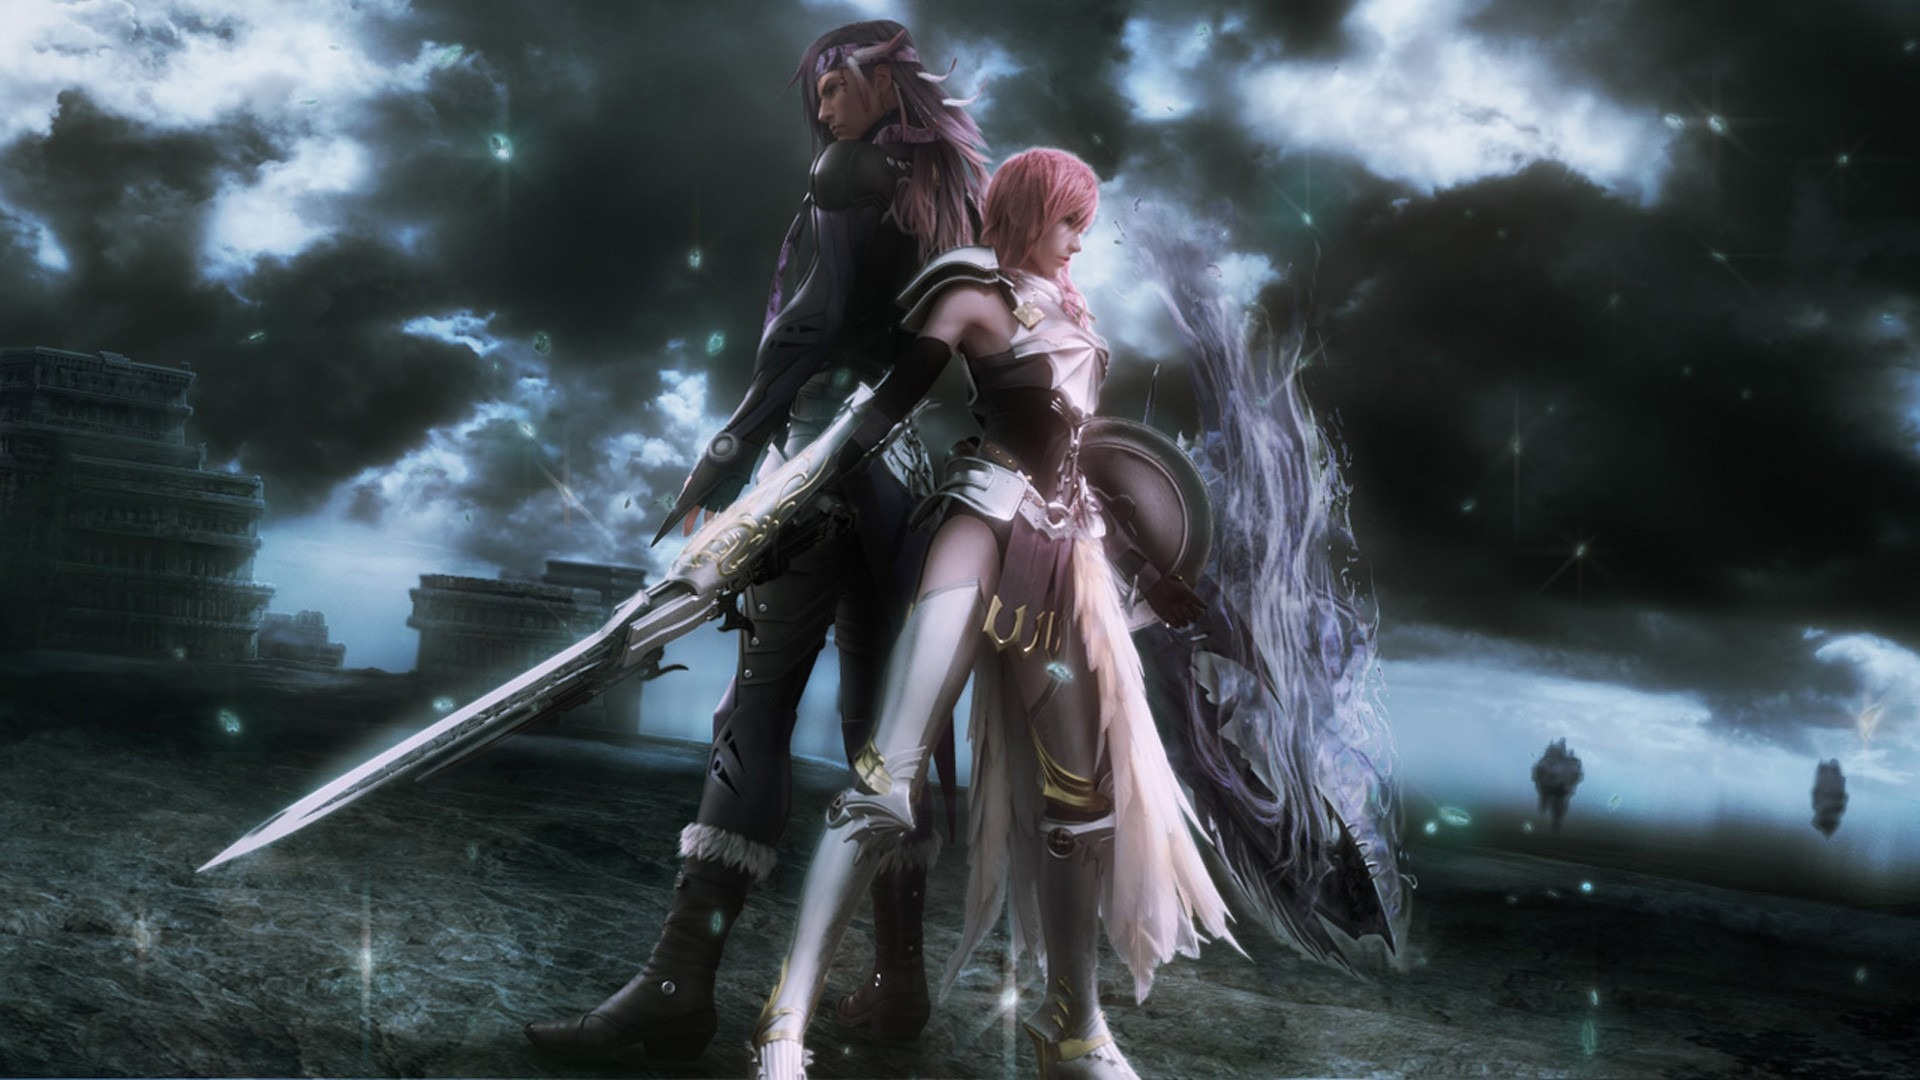 final fantasy xiii-2 wallpapers | free downloads | inmotion gaming